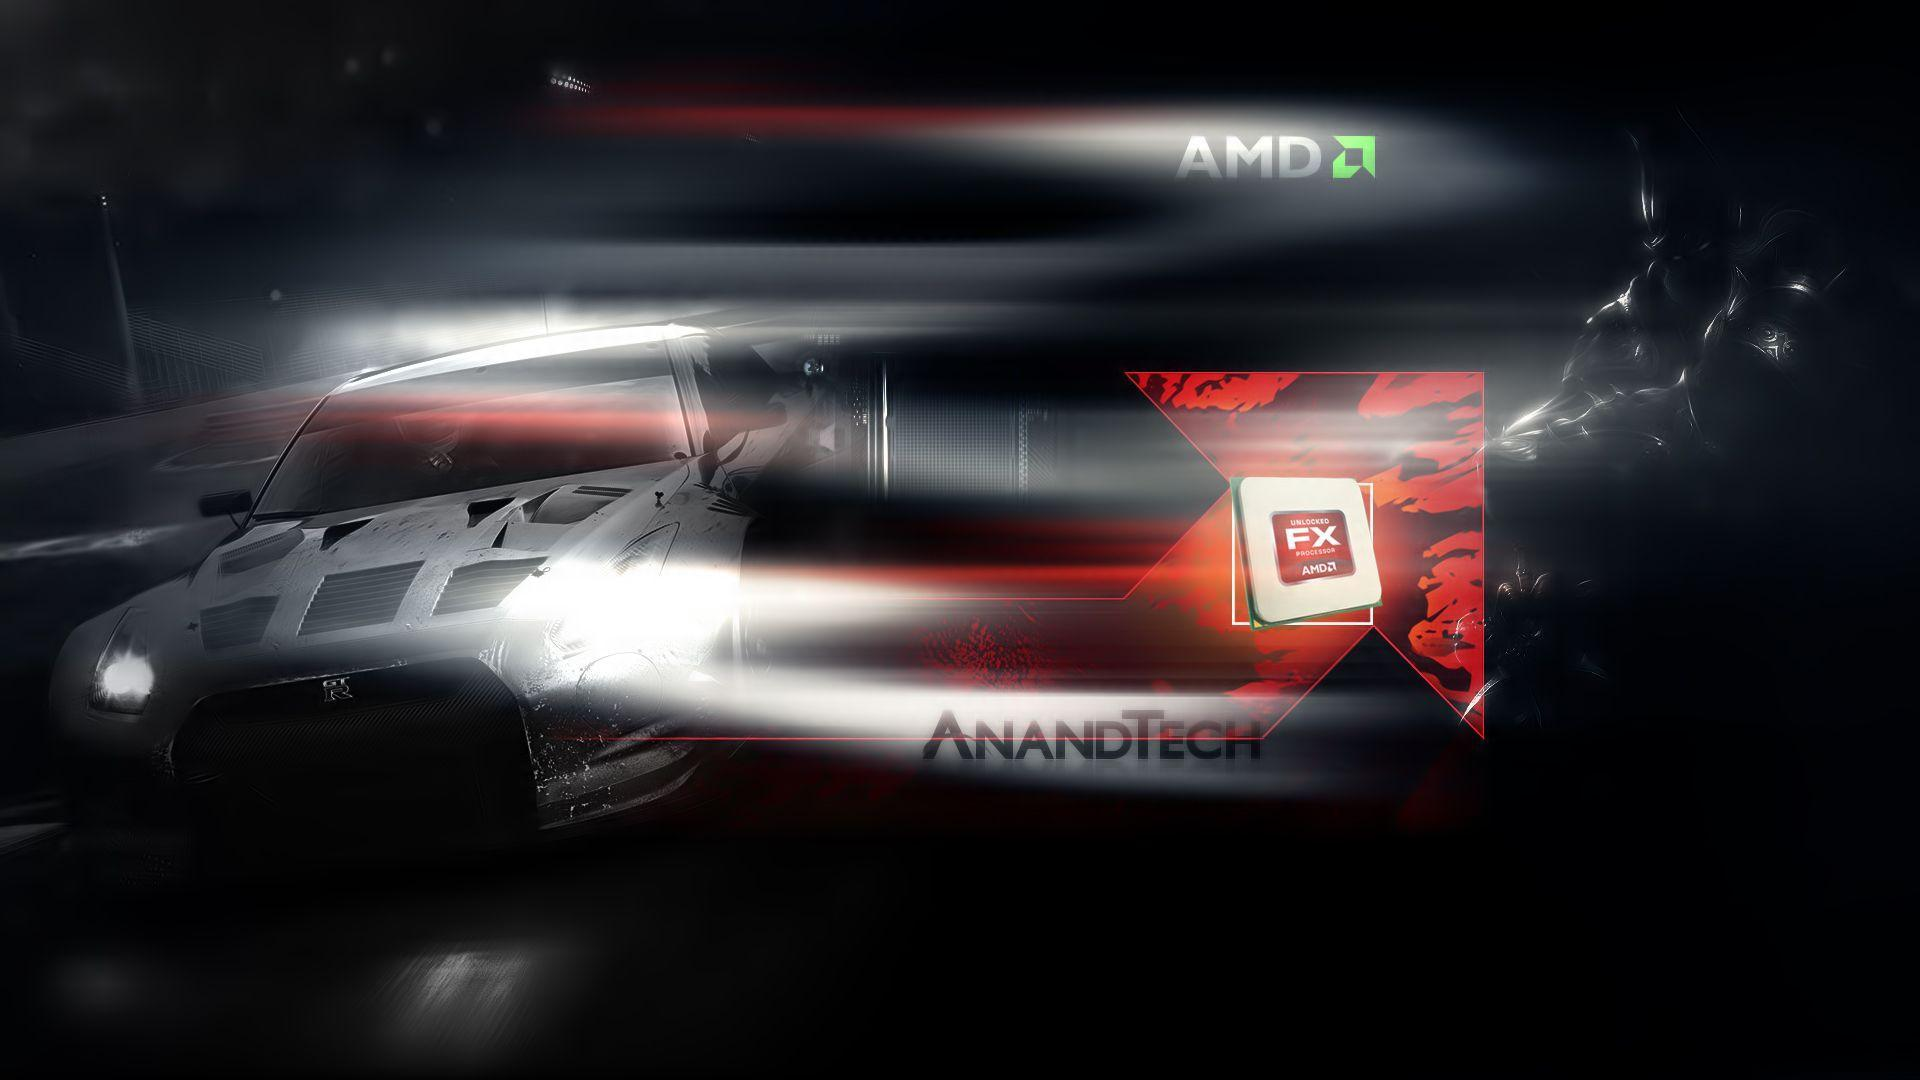 amd fx background by - photo #6